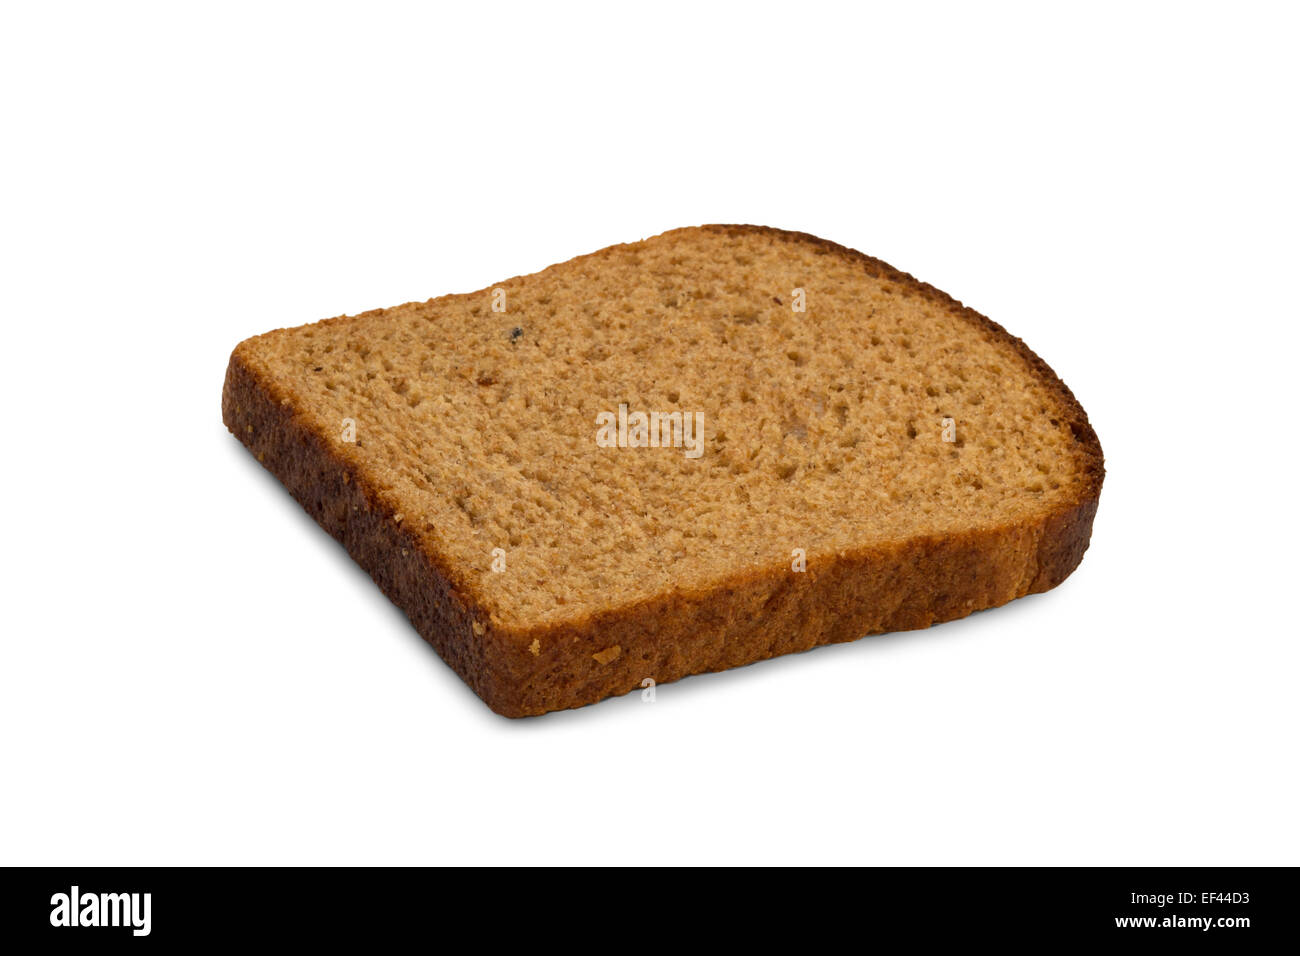 Closeup of a slice of traditional Finnish potato rye bread, isolated on white background - Stock Image